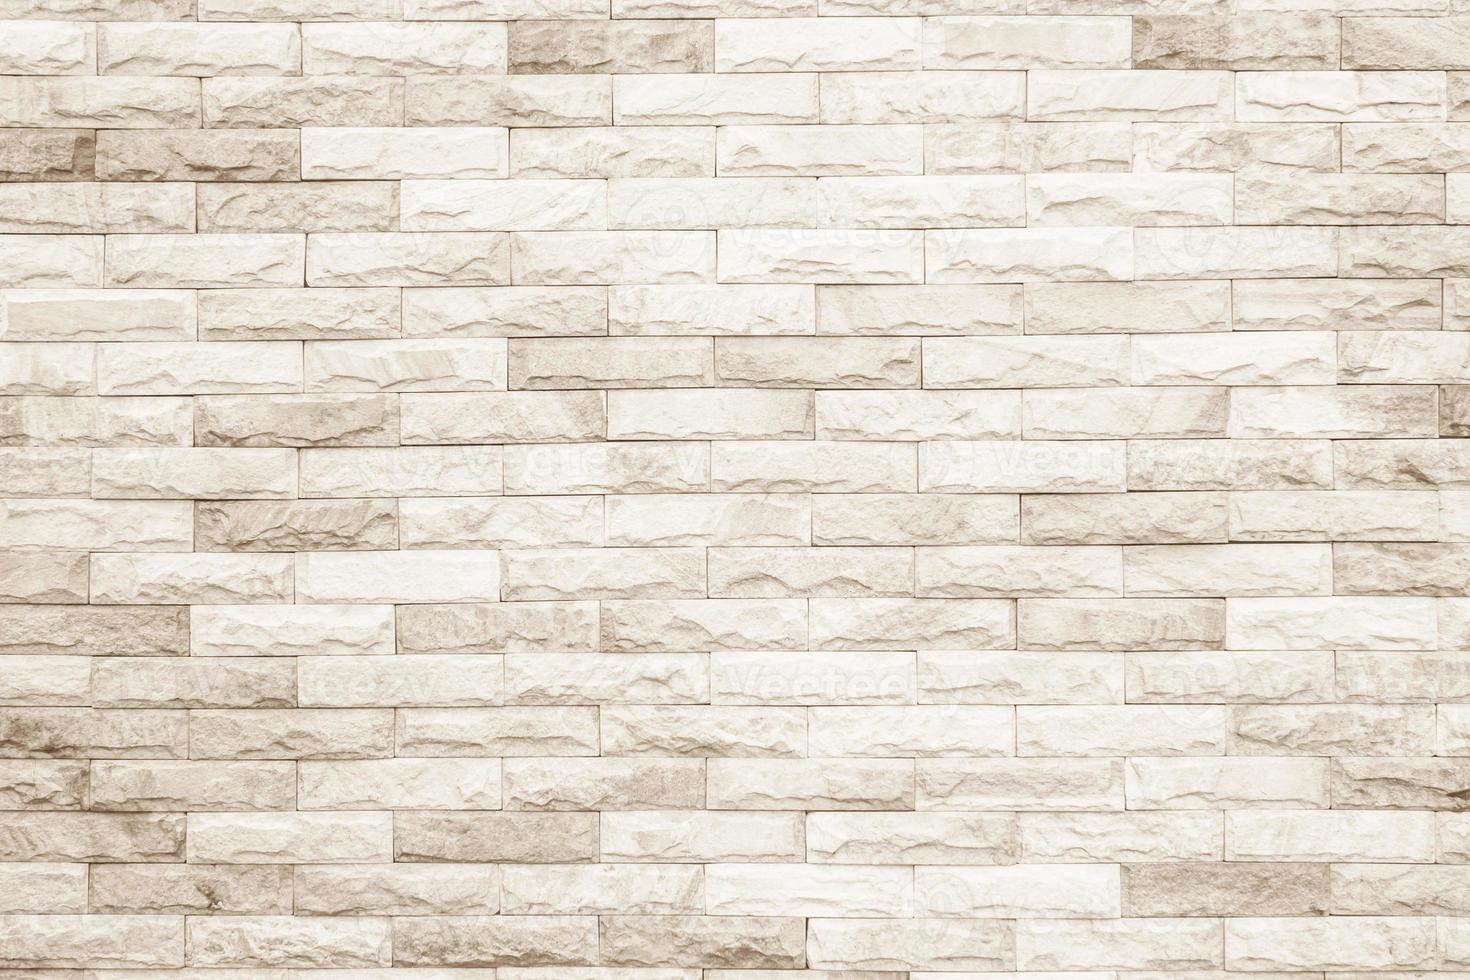 Black and white brick wall texture background photo